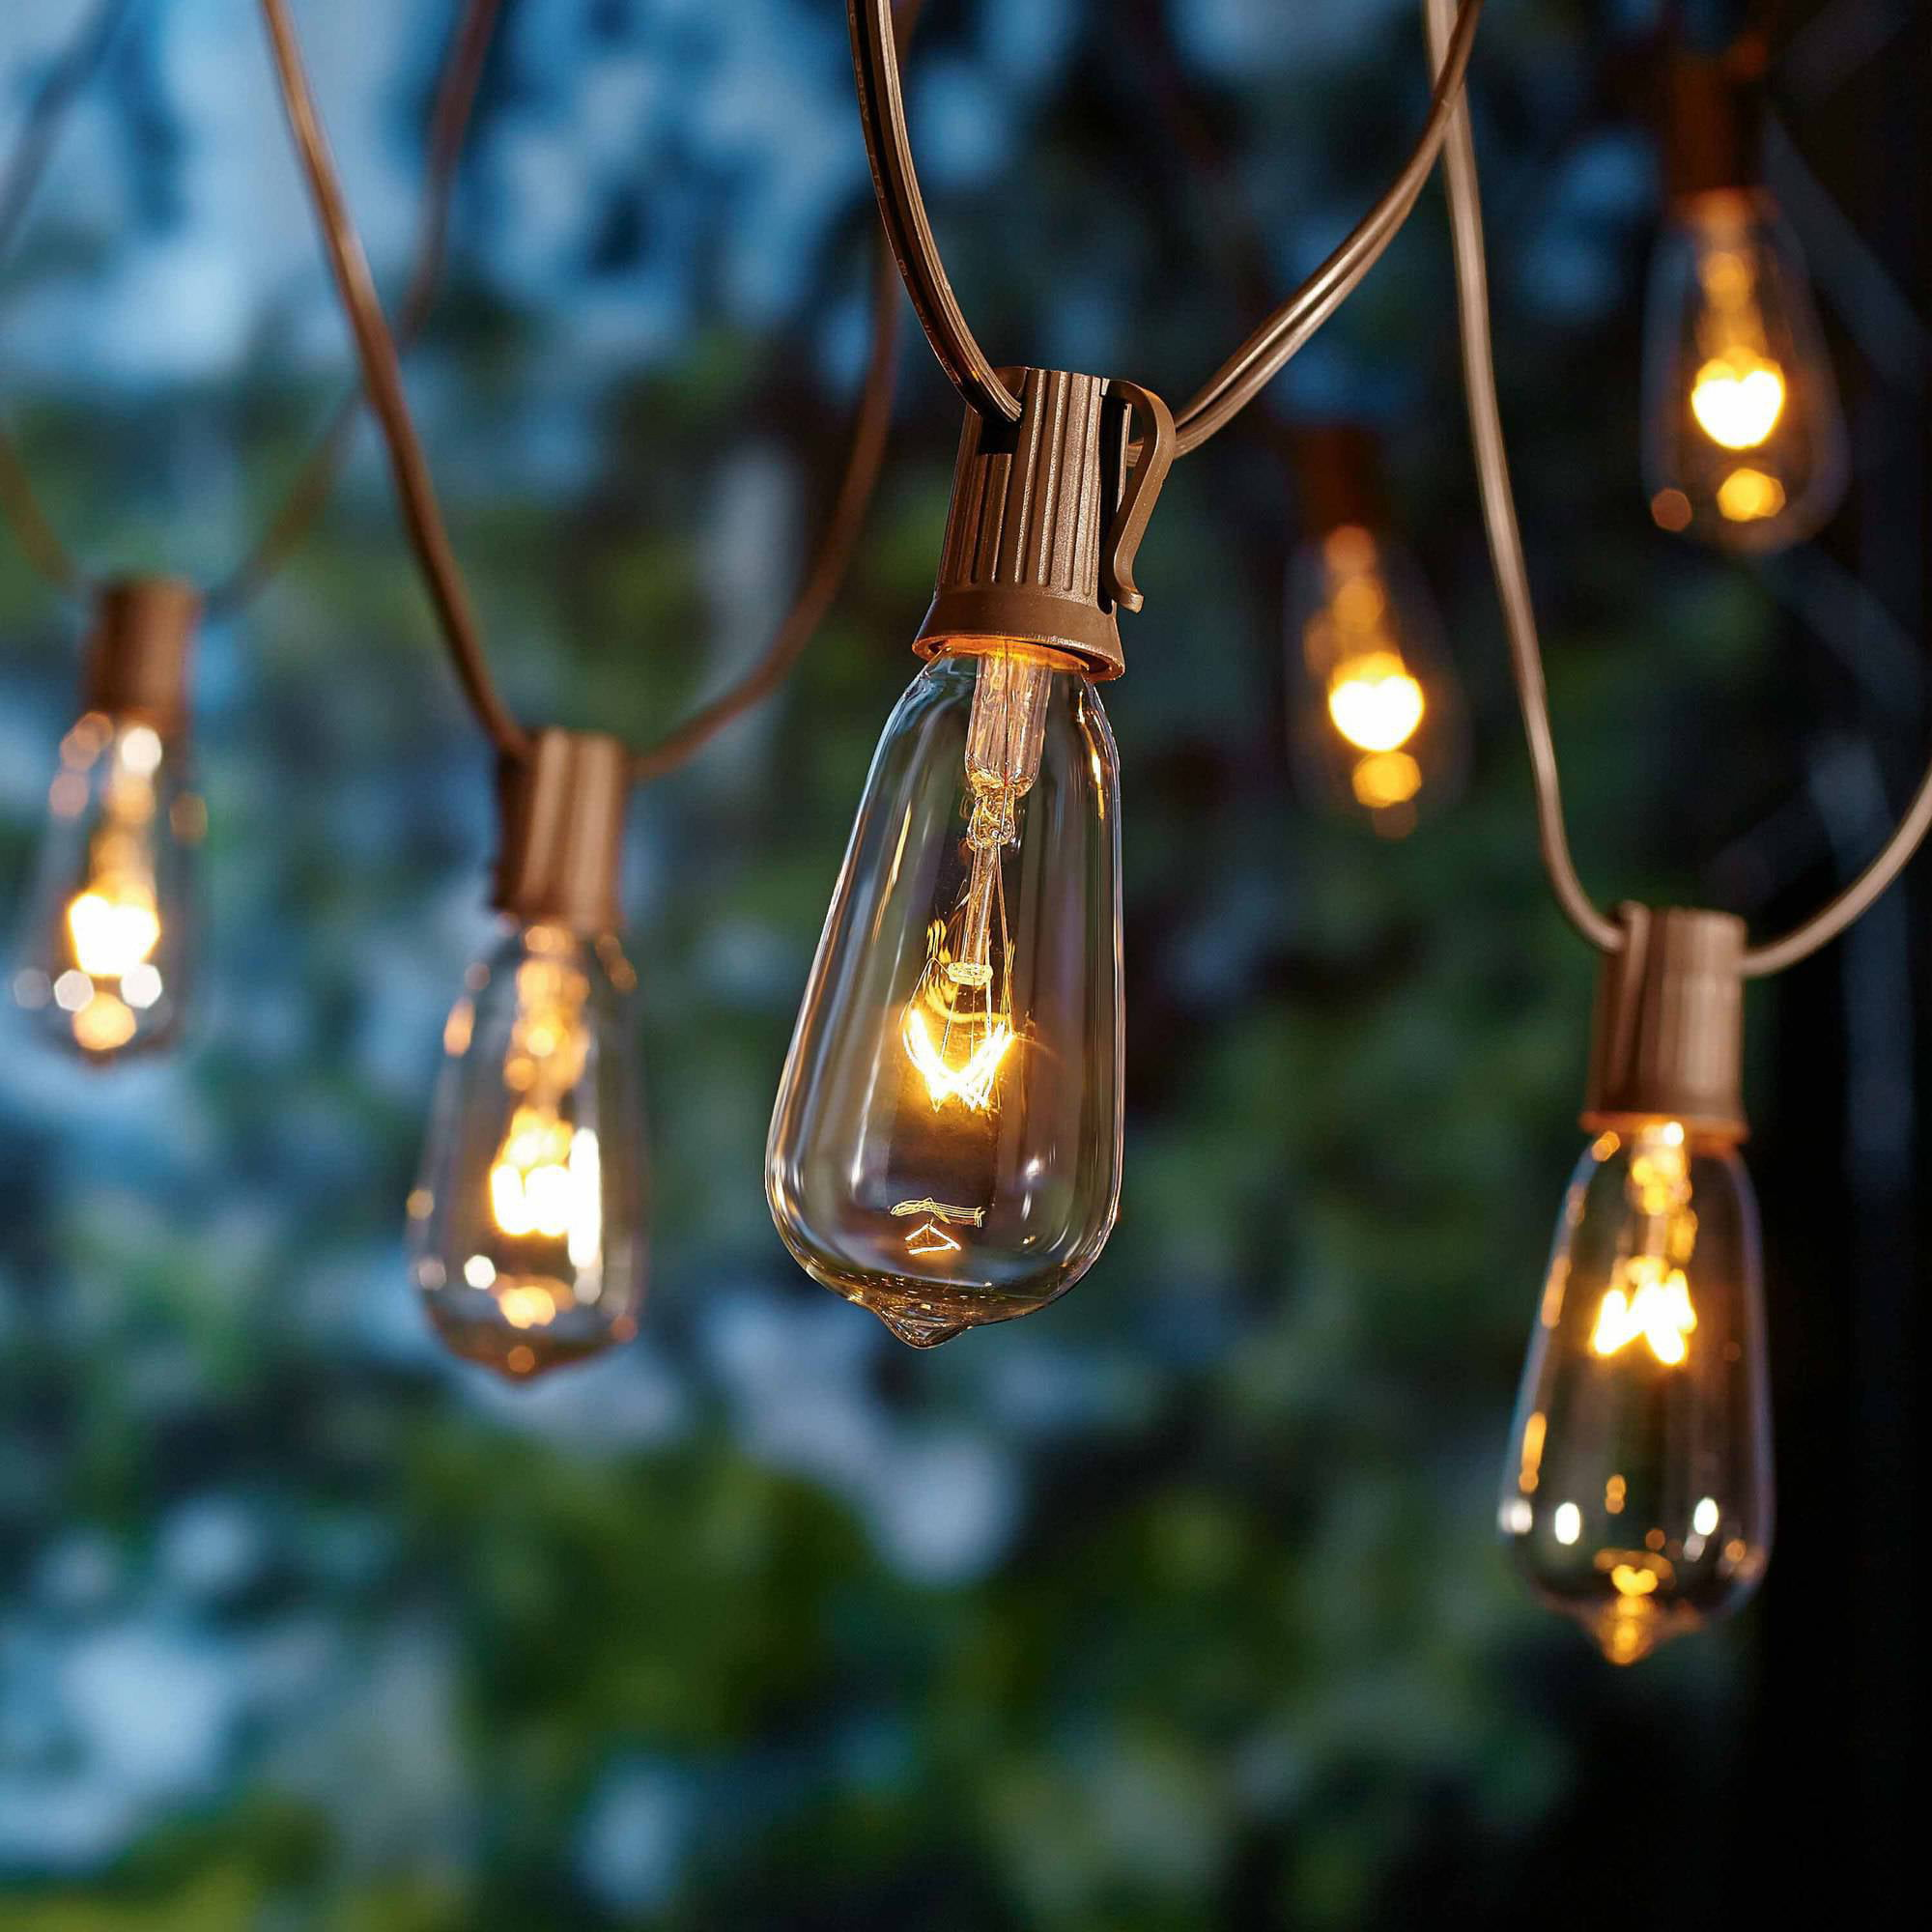 Glass String Lights Outdoor : 10 Count Glass Edison String Lights, indoor outdoor Christmas Decor Gift eBay